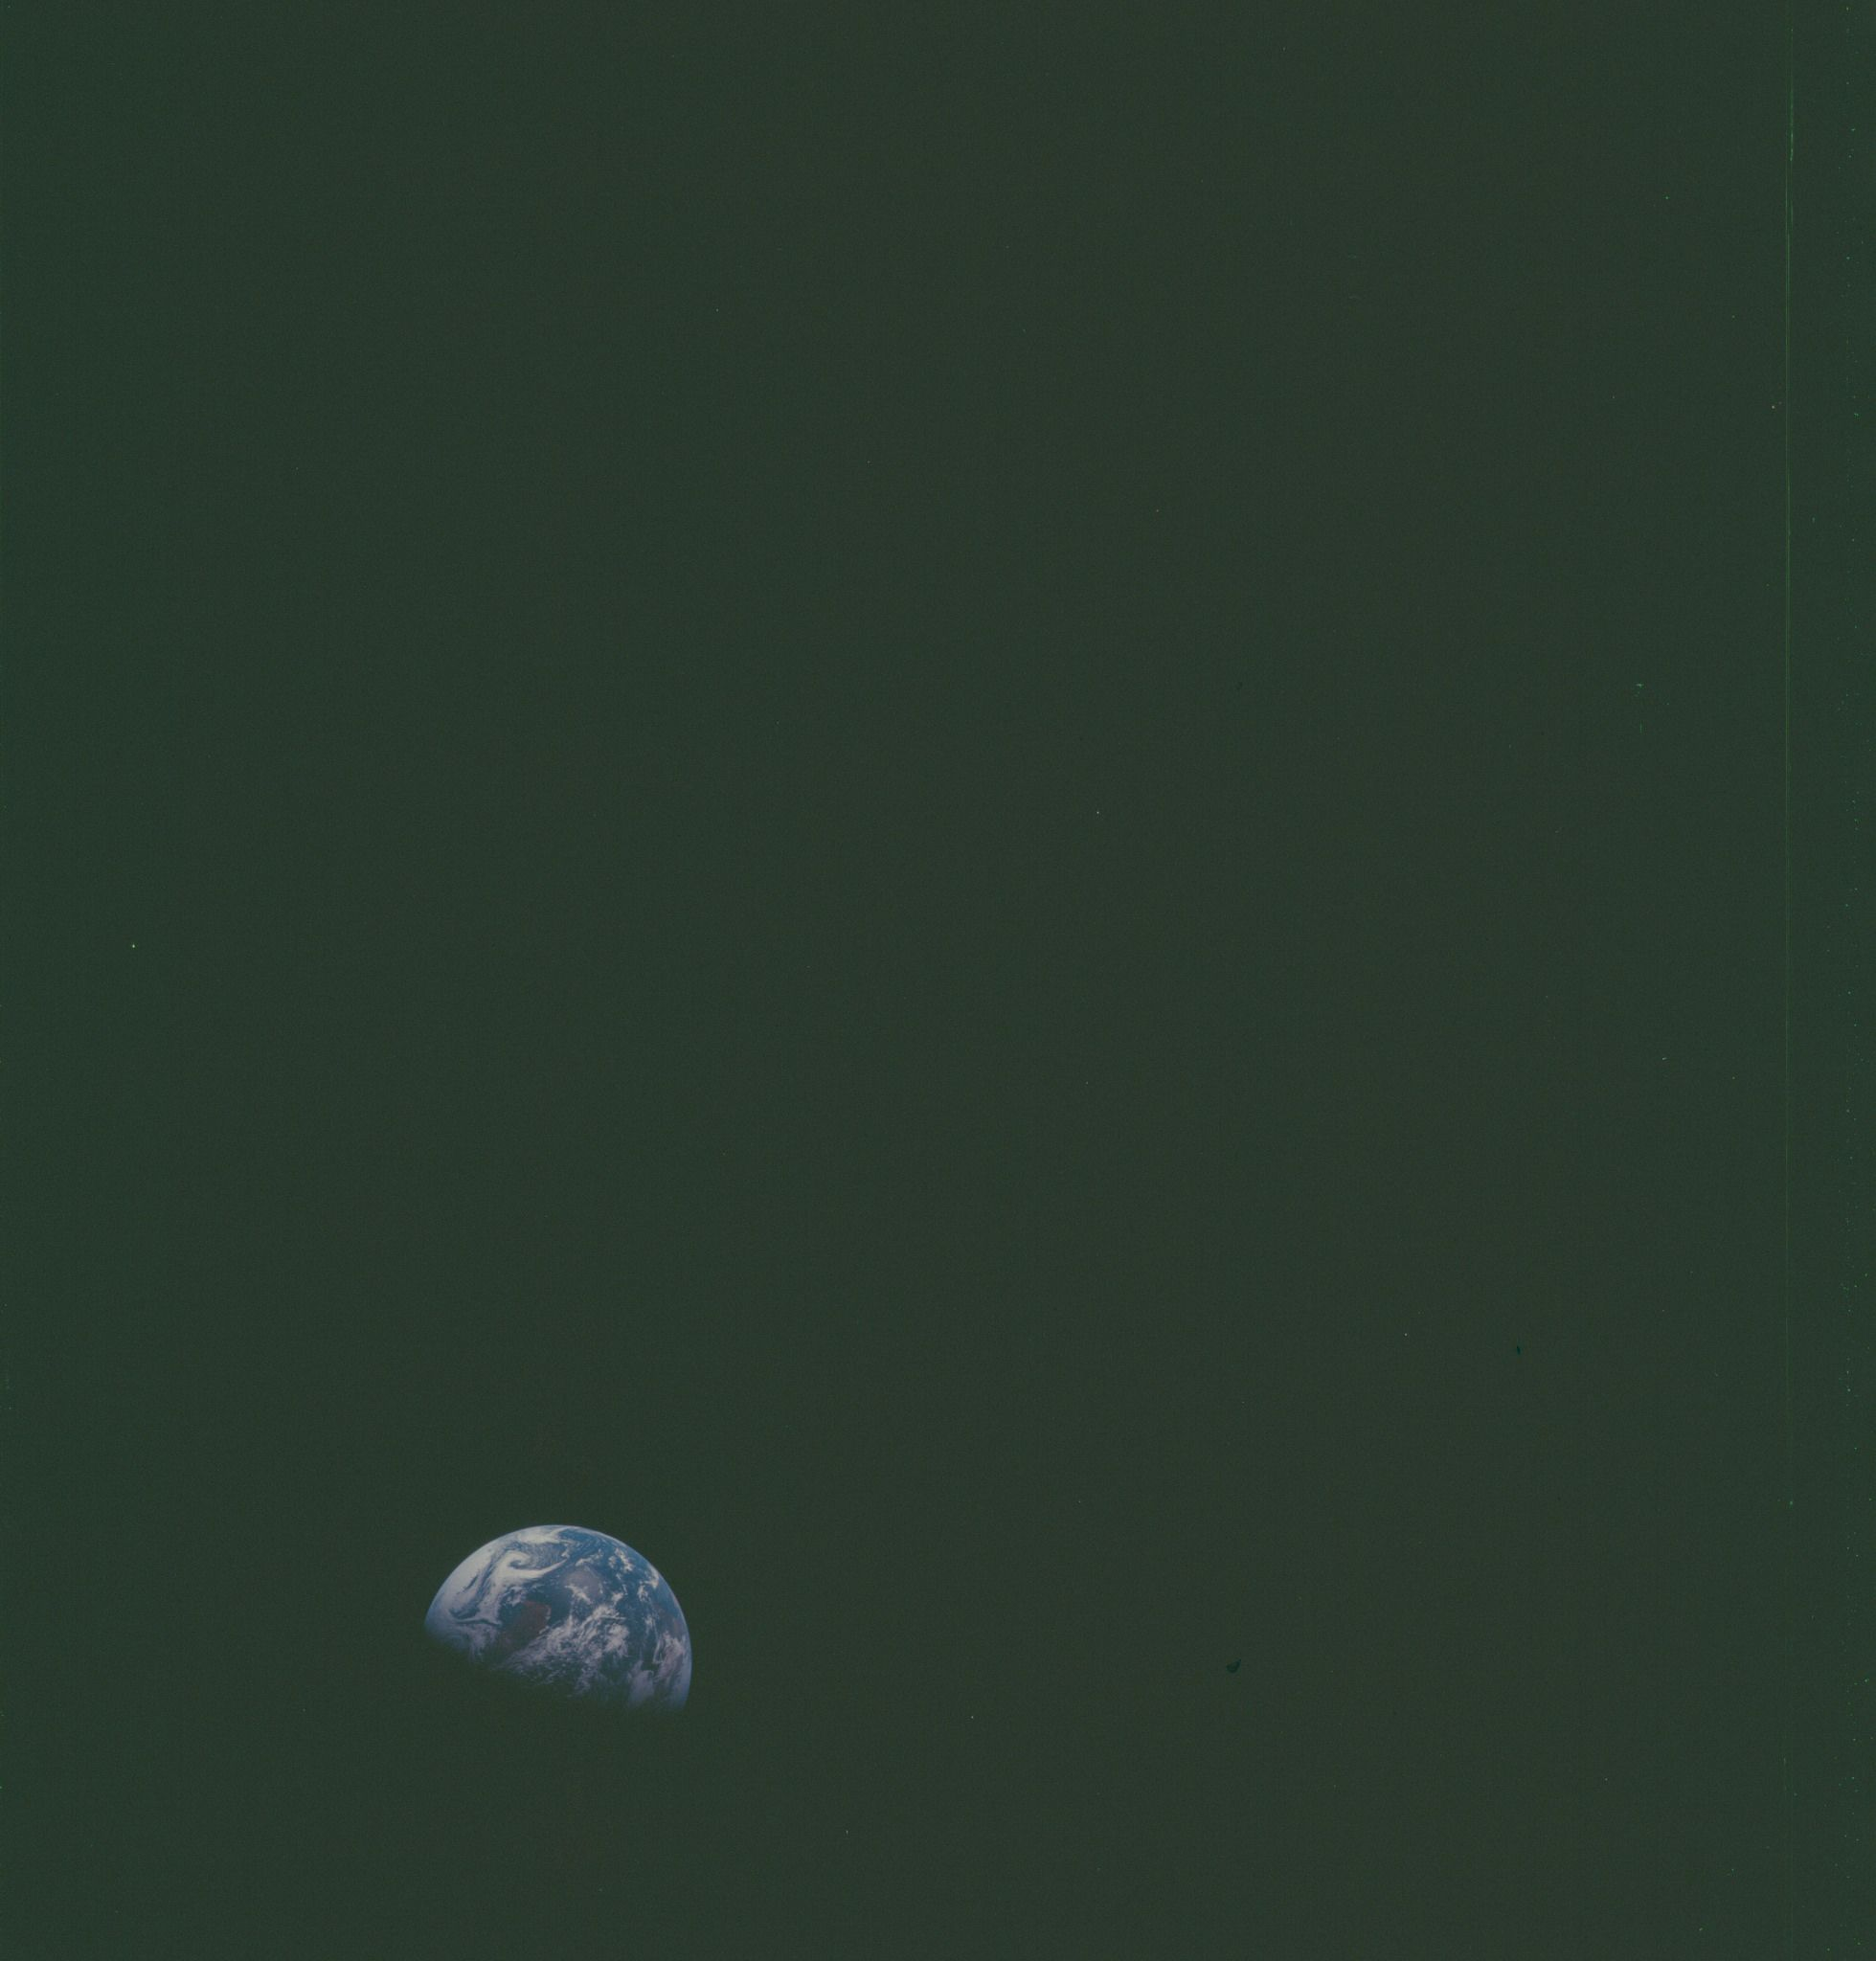 https://flic.kr/p/zkpPXN | AS08-15-2535 | Apollo 8 Hasselblad image from film magazine 15/F - Trans-Earth Coast